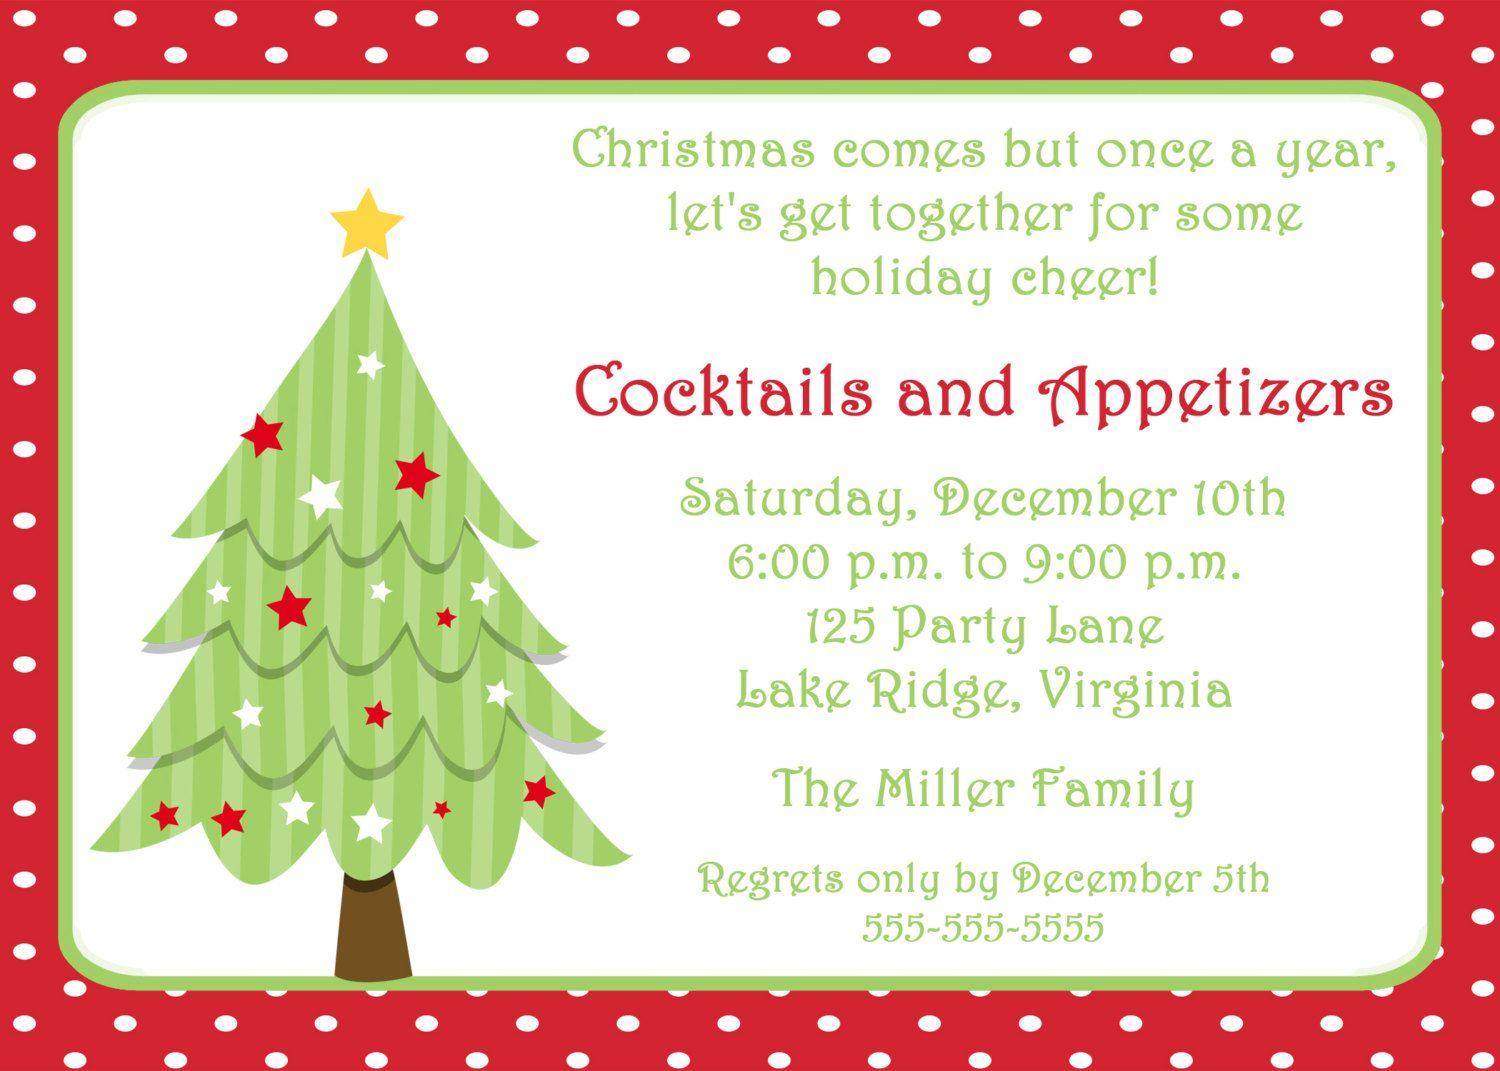 Free Invitations Templates Free | Free Christmas Invitation - Free Printable Christmas Invitations